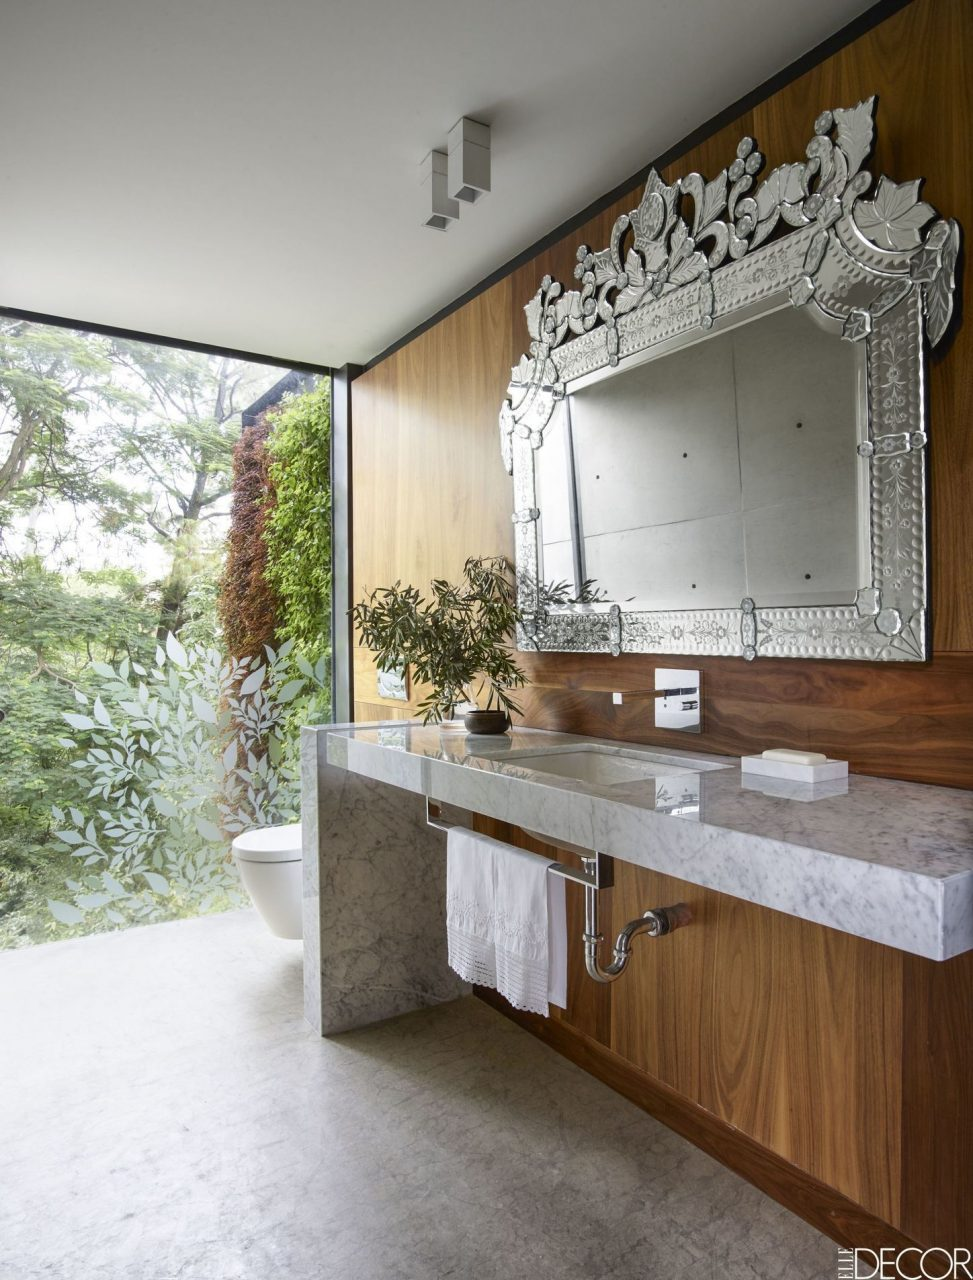 80 Best Bathroom Design Ideas Gallery Of Stylish Small Large